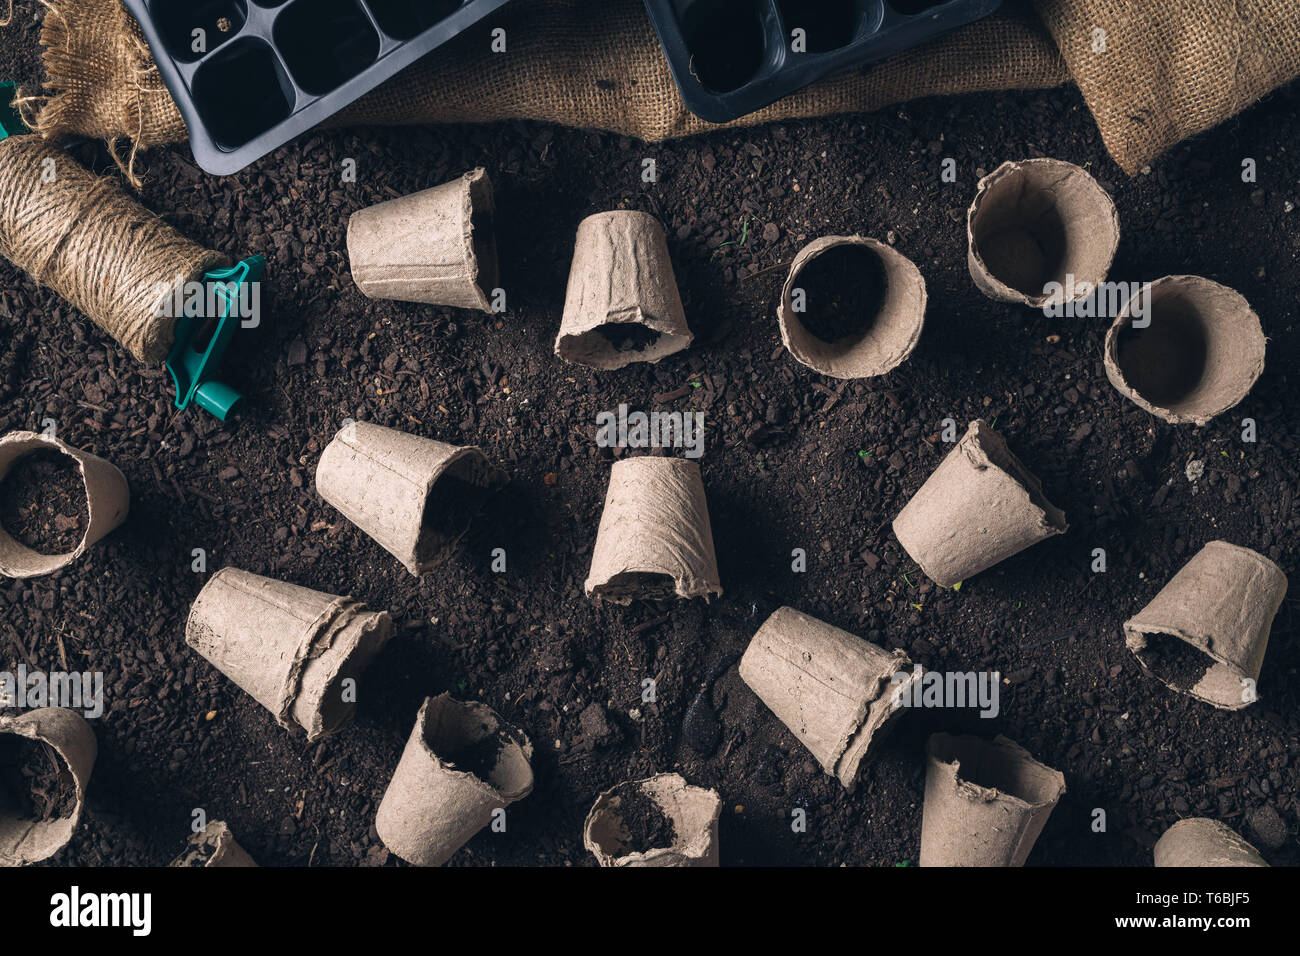 Biodegradable peat pot on greenhouse compost humus soil, organic farming and cultivation - Stock Image